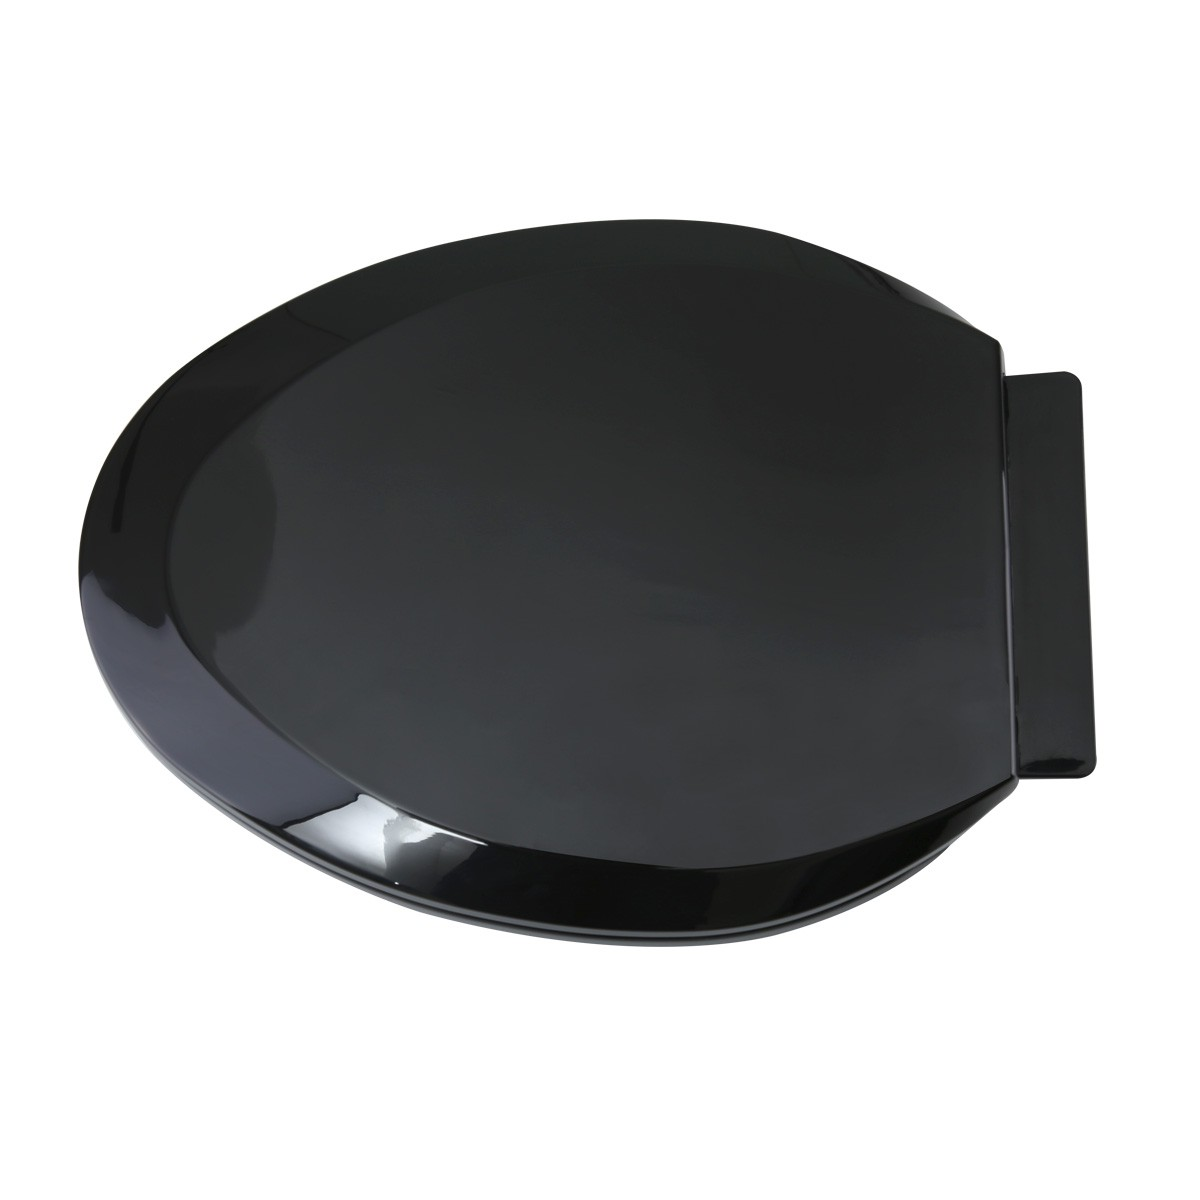 No Slam Slow Close Plastic Elongated Toilet Seat in Black Renovators Supply Slow Soft Close Closing No Slam Heavy Duty Modern Black Elongated Toilet Seat